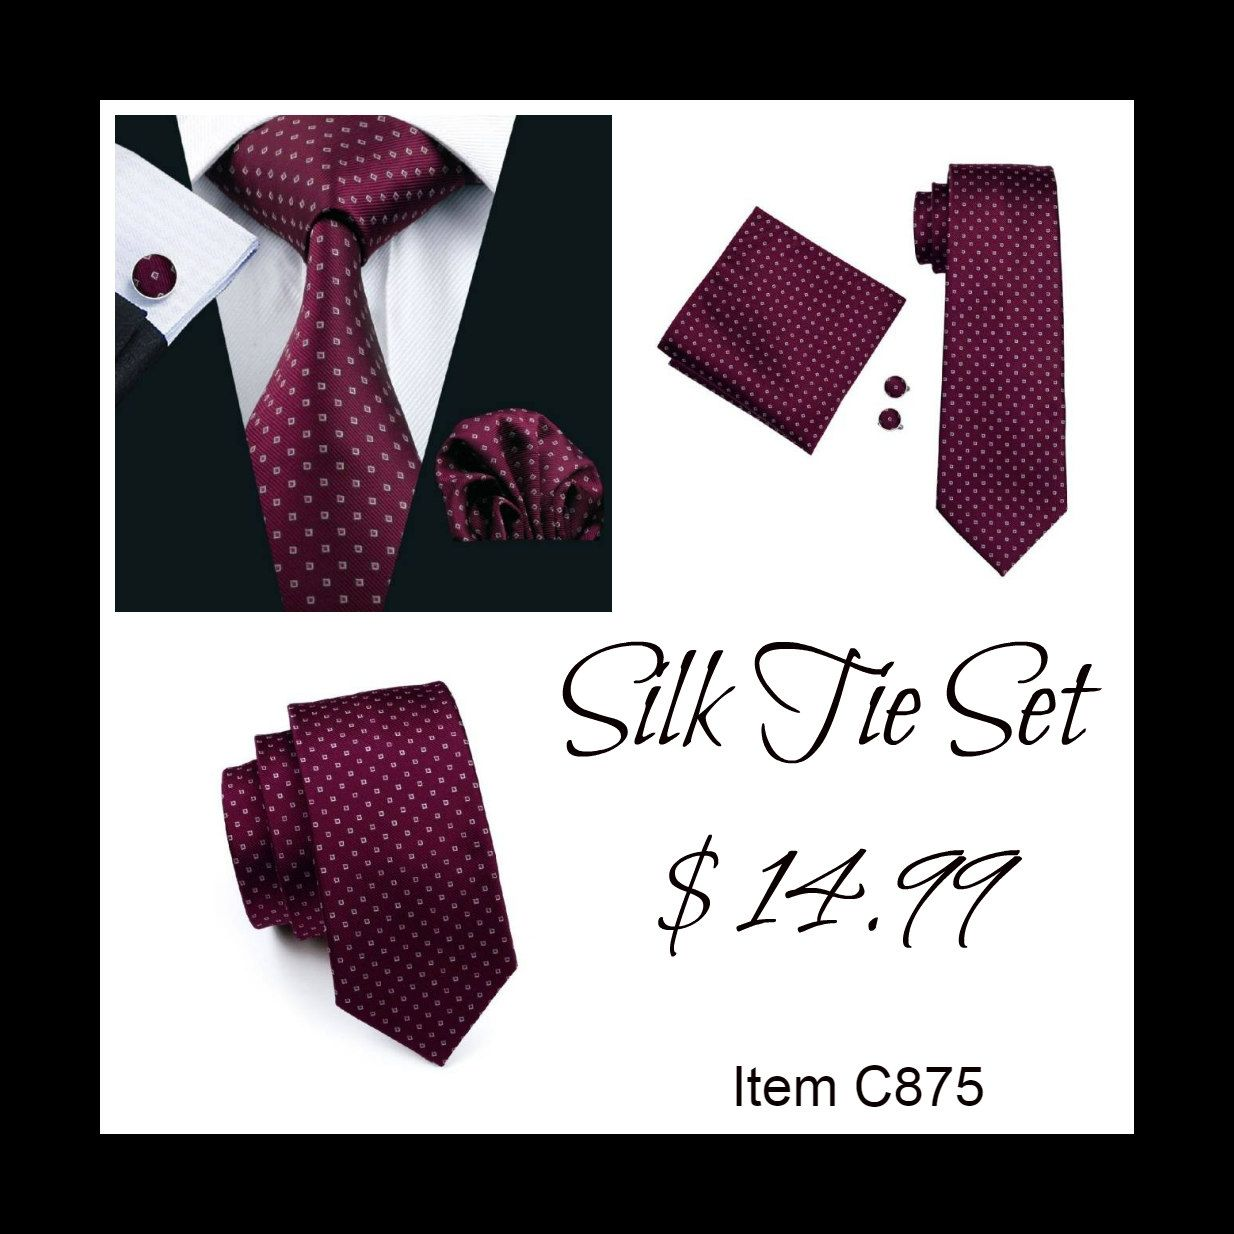 "This is a brand new men's silk tie set. Set includes coordinating tie, handkerchief and cuff link.    Tie length is 61"" from end to end, and 3.25"" width at the widest part of the tie.     **Please Note** This item requires three (3) weeks to ship.  Please take the shipping time into consideration prior to placing your order.  Thank you ~ 